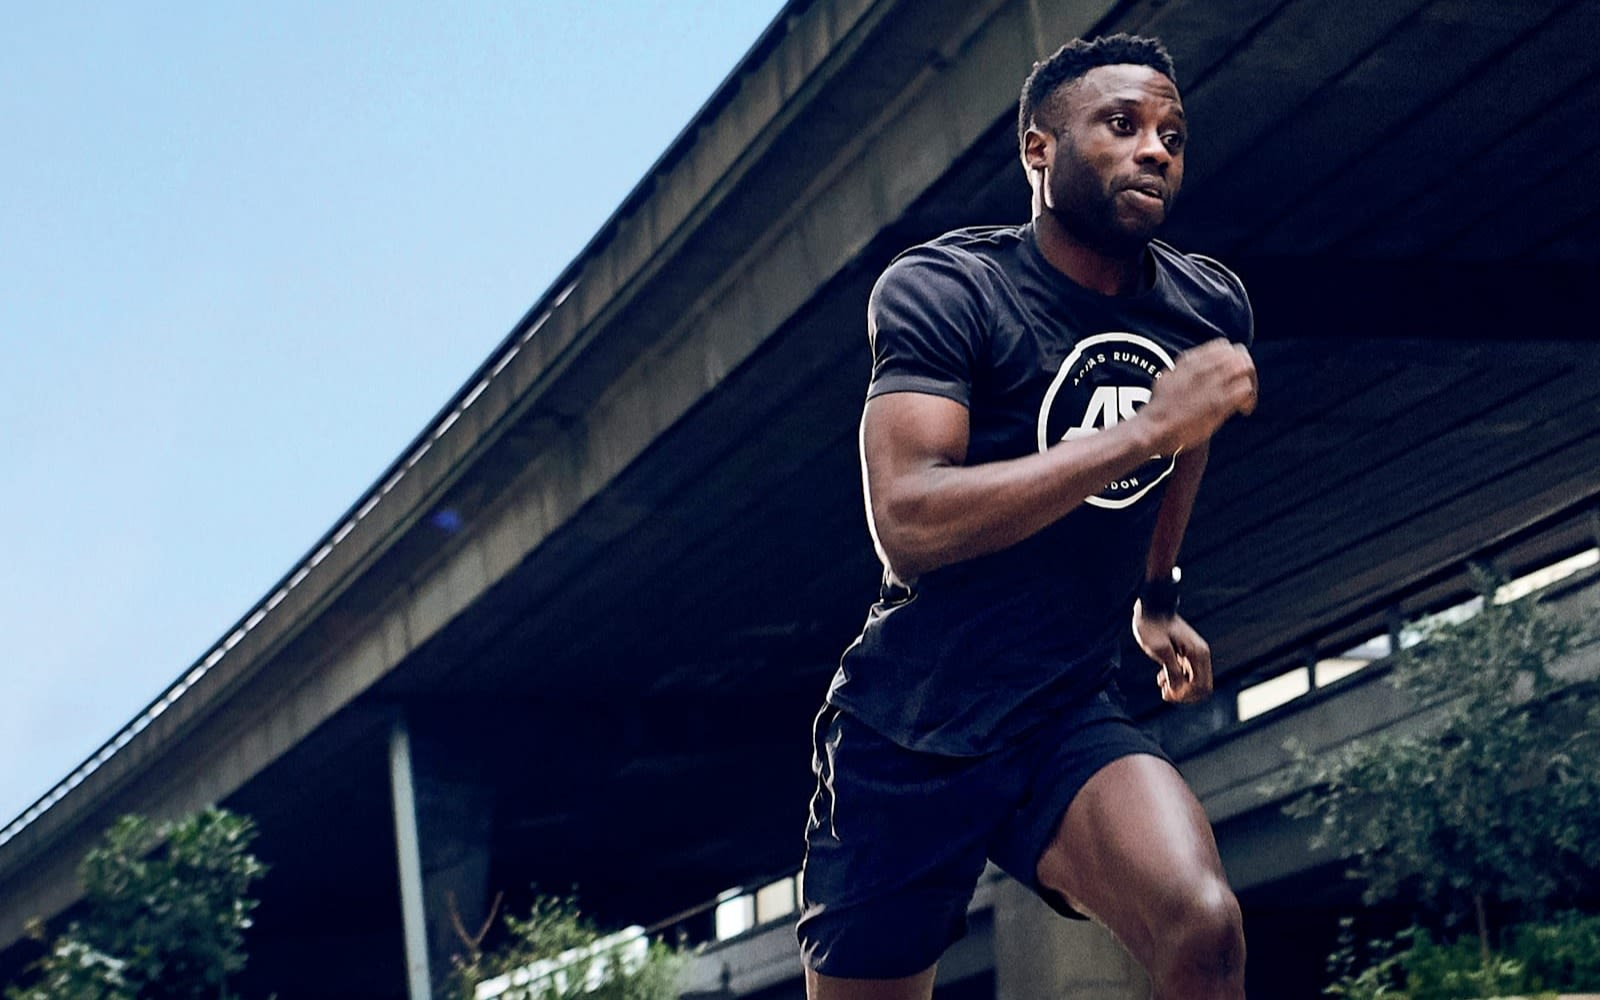 Man running in athletic gear with a motorway bridge above him